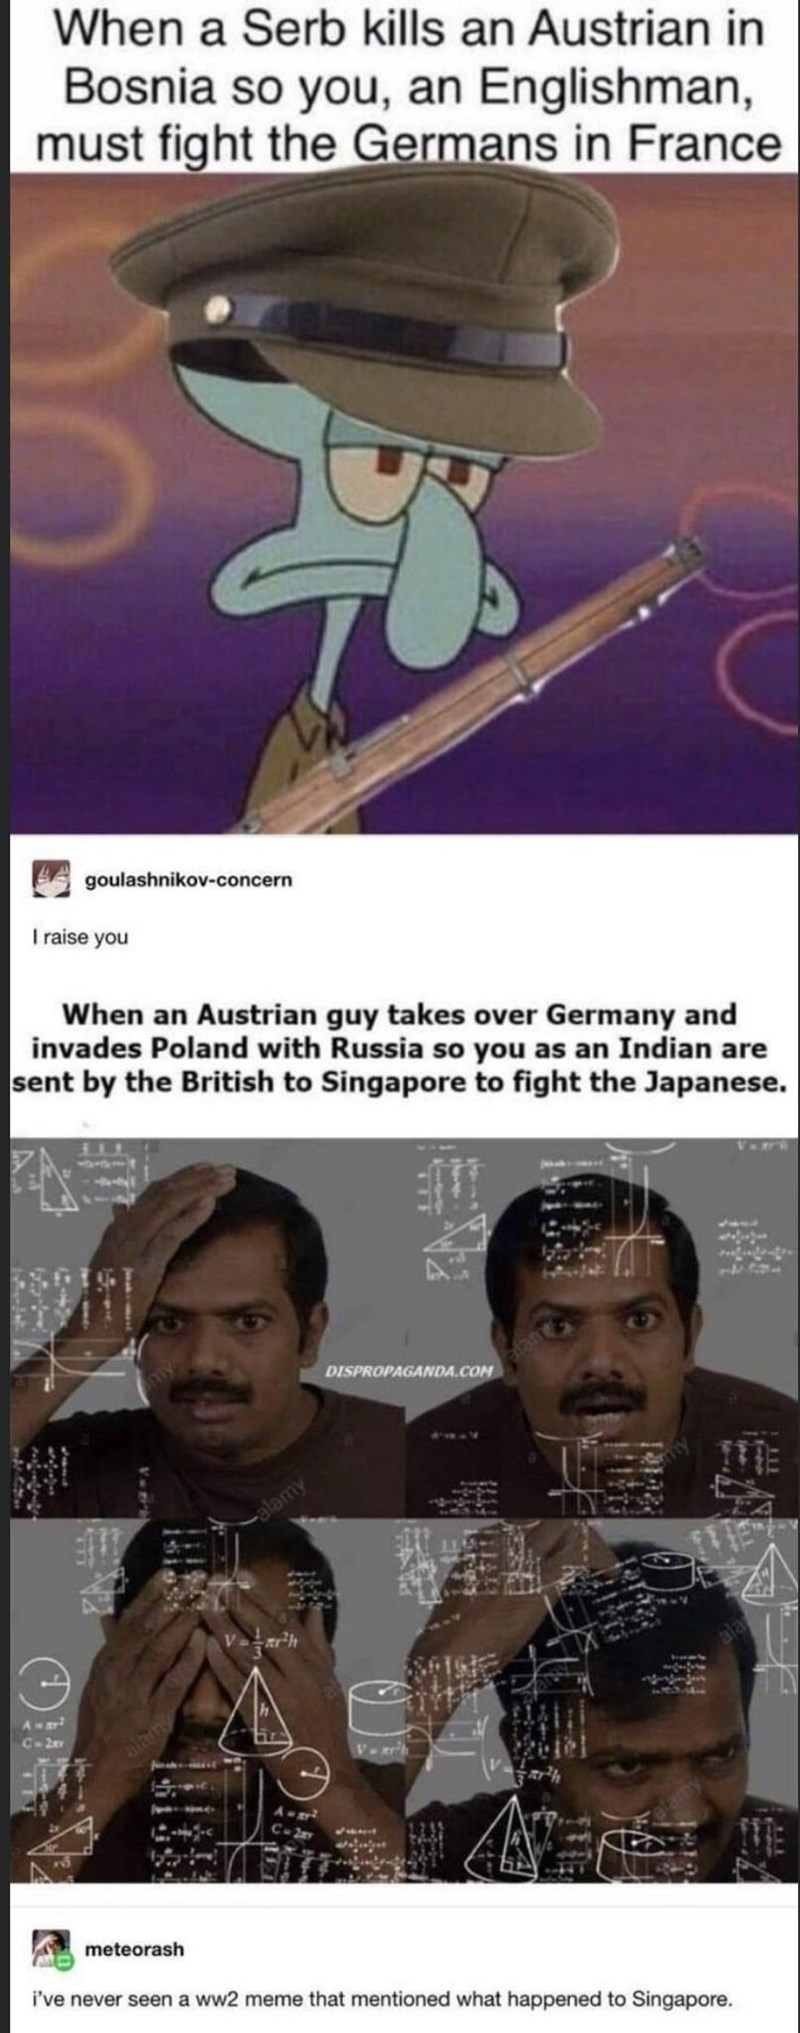 Forehead - When a Serb kills an Austrian in Bosnia so you, an Englishman, must fight the Germans in France goulashnikov-concern I raise you When an Austrian guy takes over Germany and invades Poland with Russia so you as an Indian are sent by the British to Singapore to fight the Japanese. DISPROPAGANDA.COM lan alamy Vrh A C-2er alarm Vr C-2a meteorash i've never seen a ww2 meme that mentioned what happened to Singapore. tel TIT